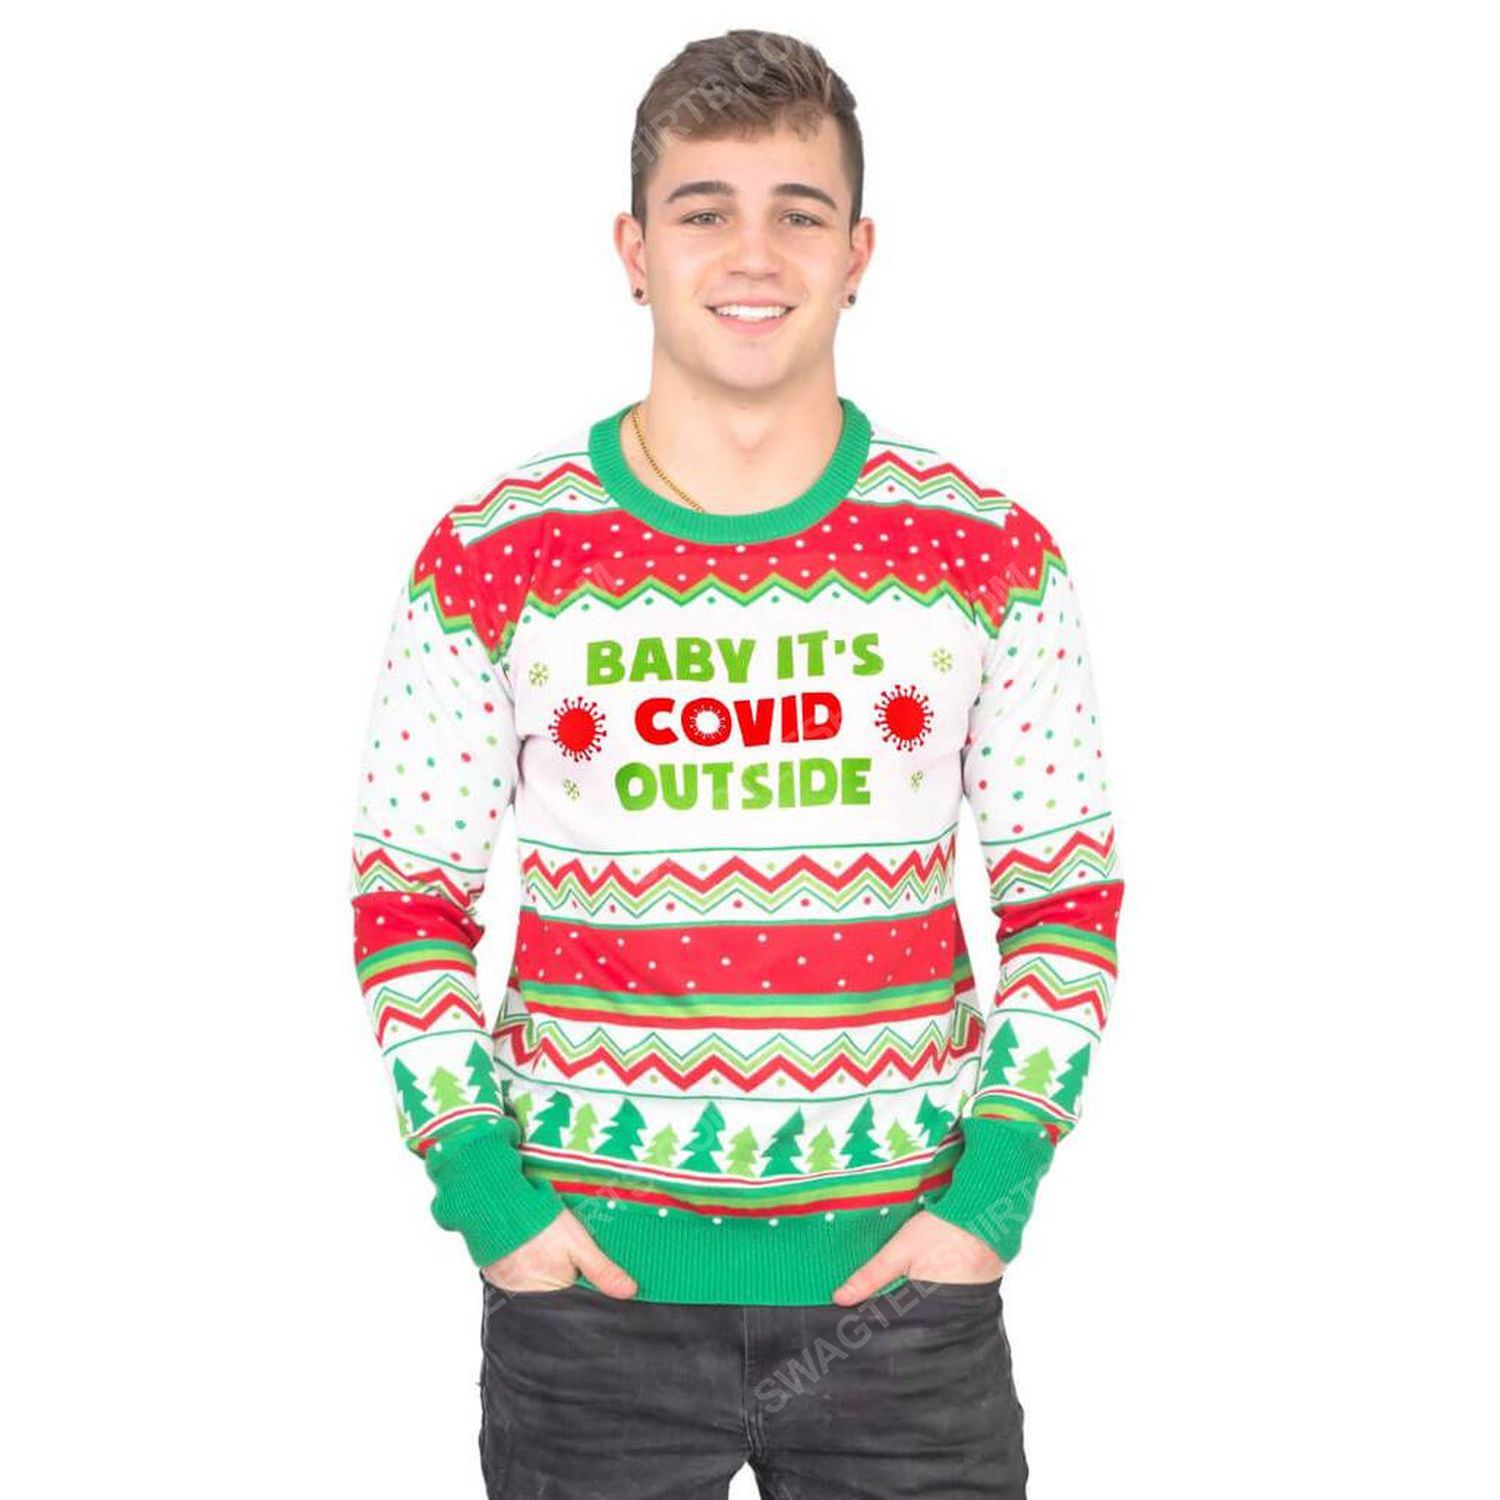 Baby it's covid outside full print ugly christmas sweater 3